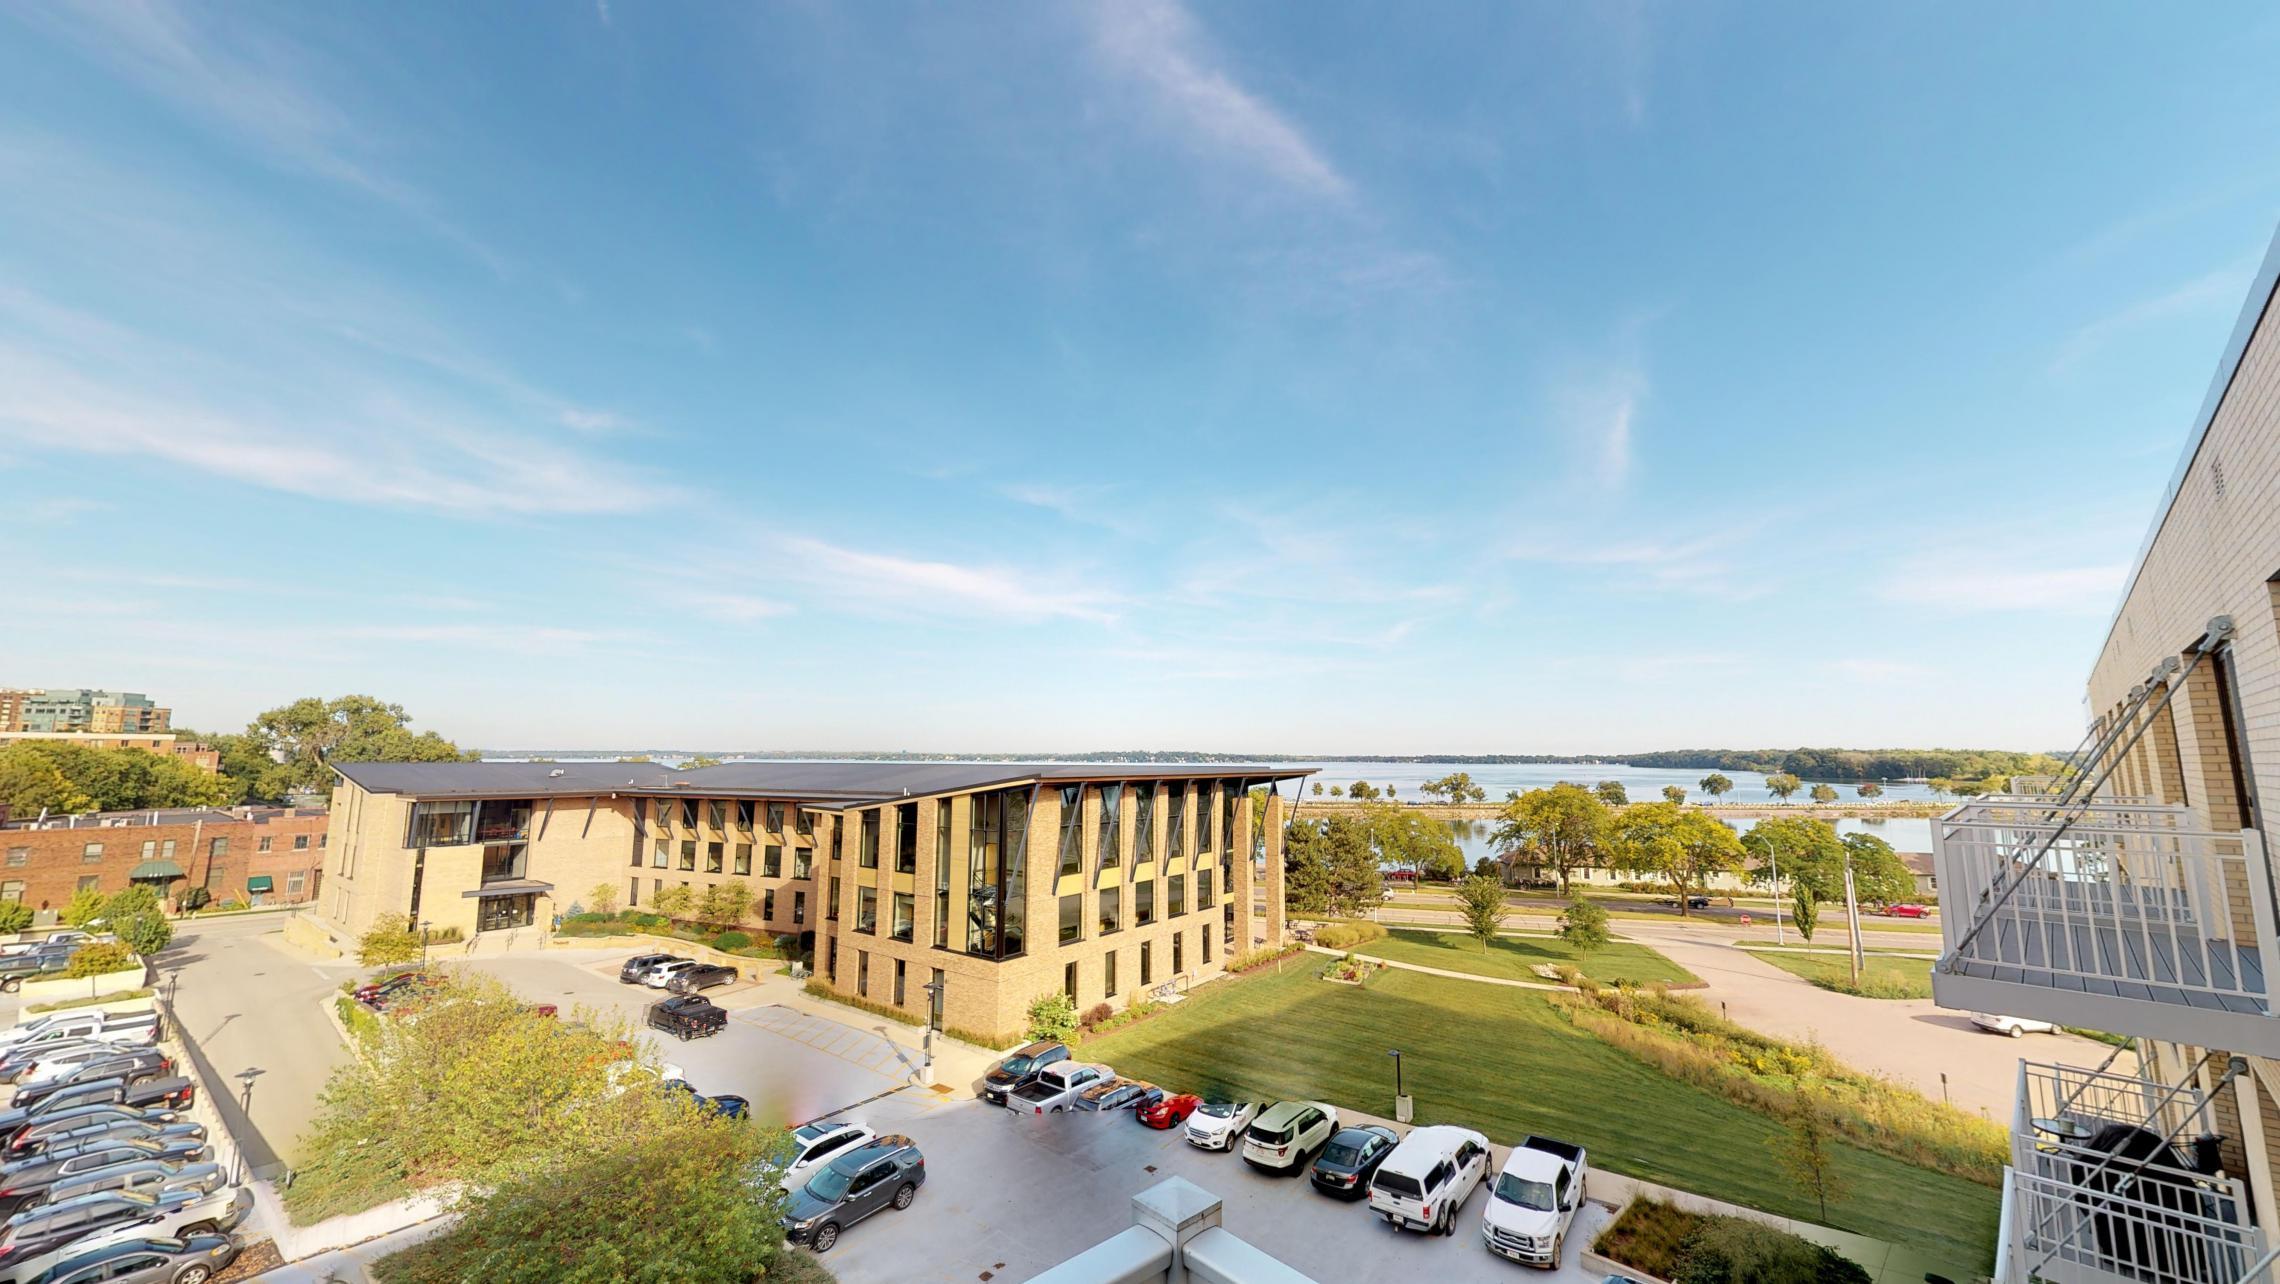 Nine-Line-Apartment-517-balcony-view-modern-downtown-lake-monona-upscale-outdoors-capitol-madison.jpg